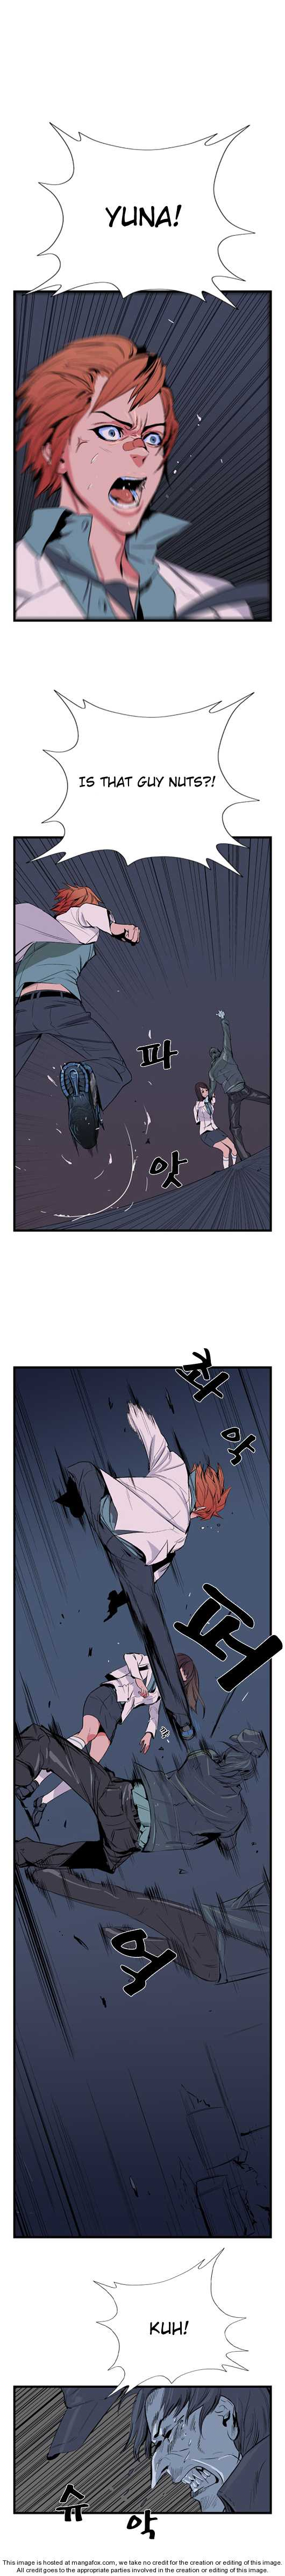 Noblesse 14 Page 3